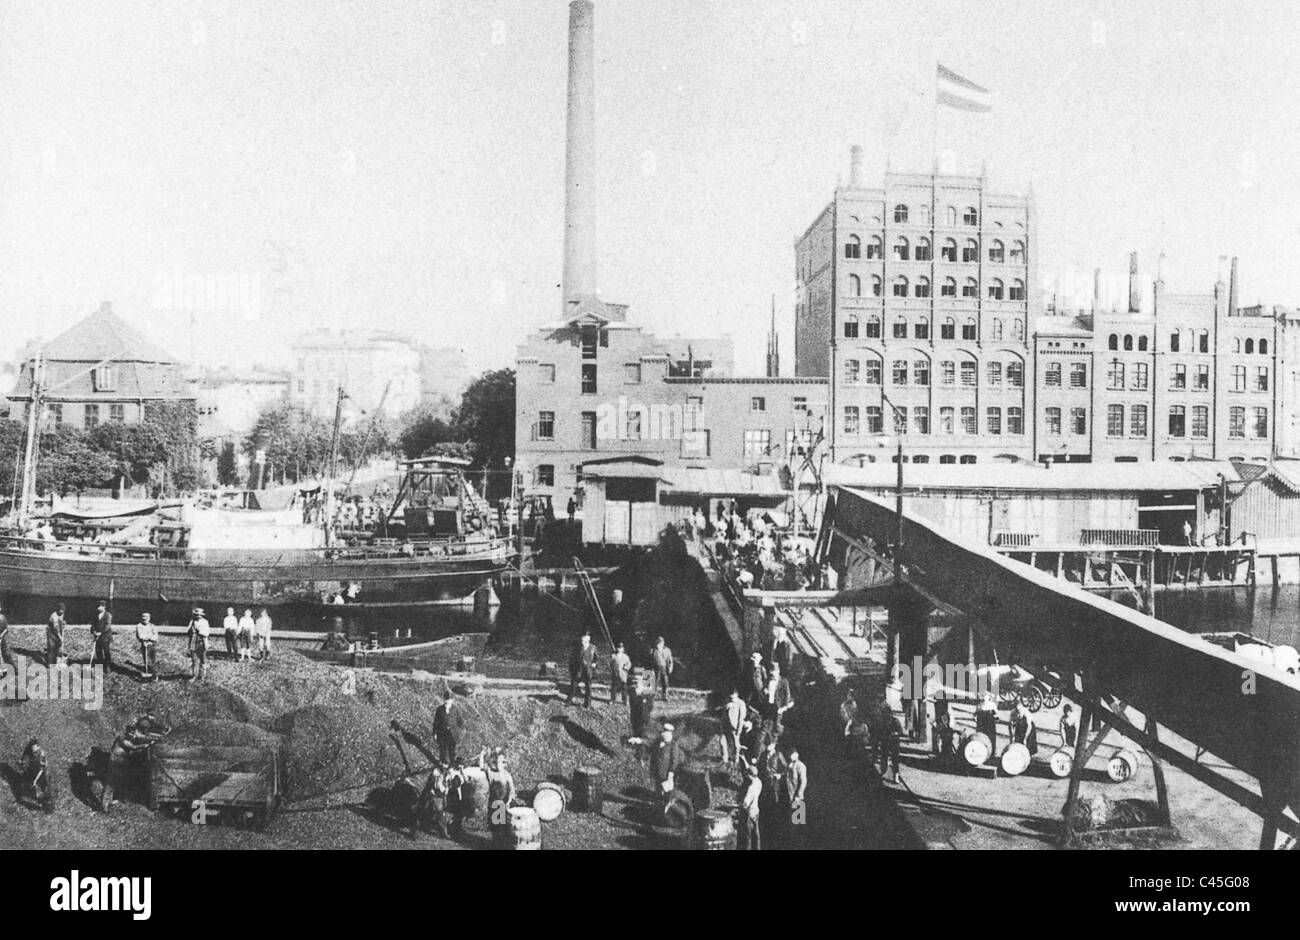 The Gdansk oil mill limited partnership on Actien Patzig and Co. at the turn of the century - Stock Image